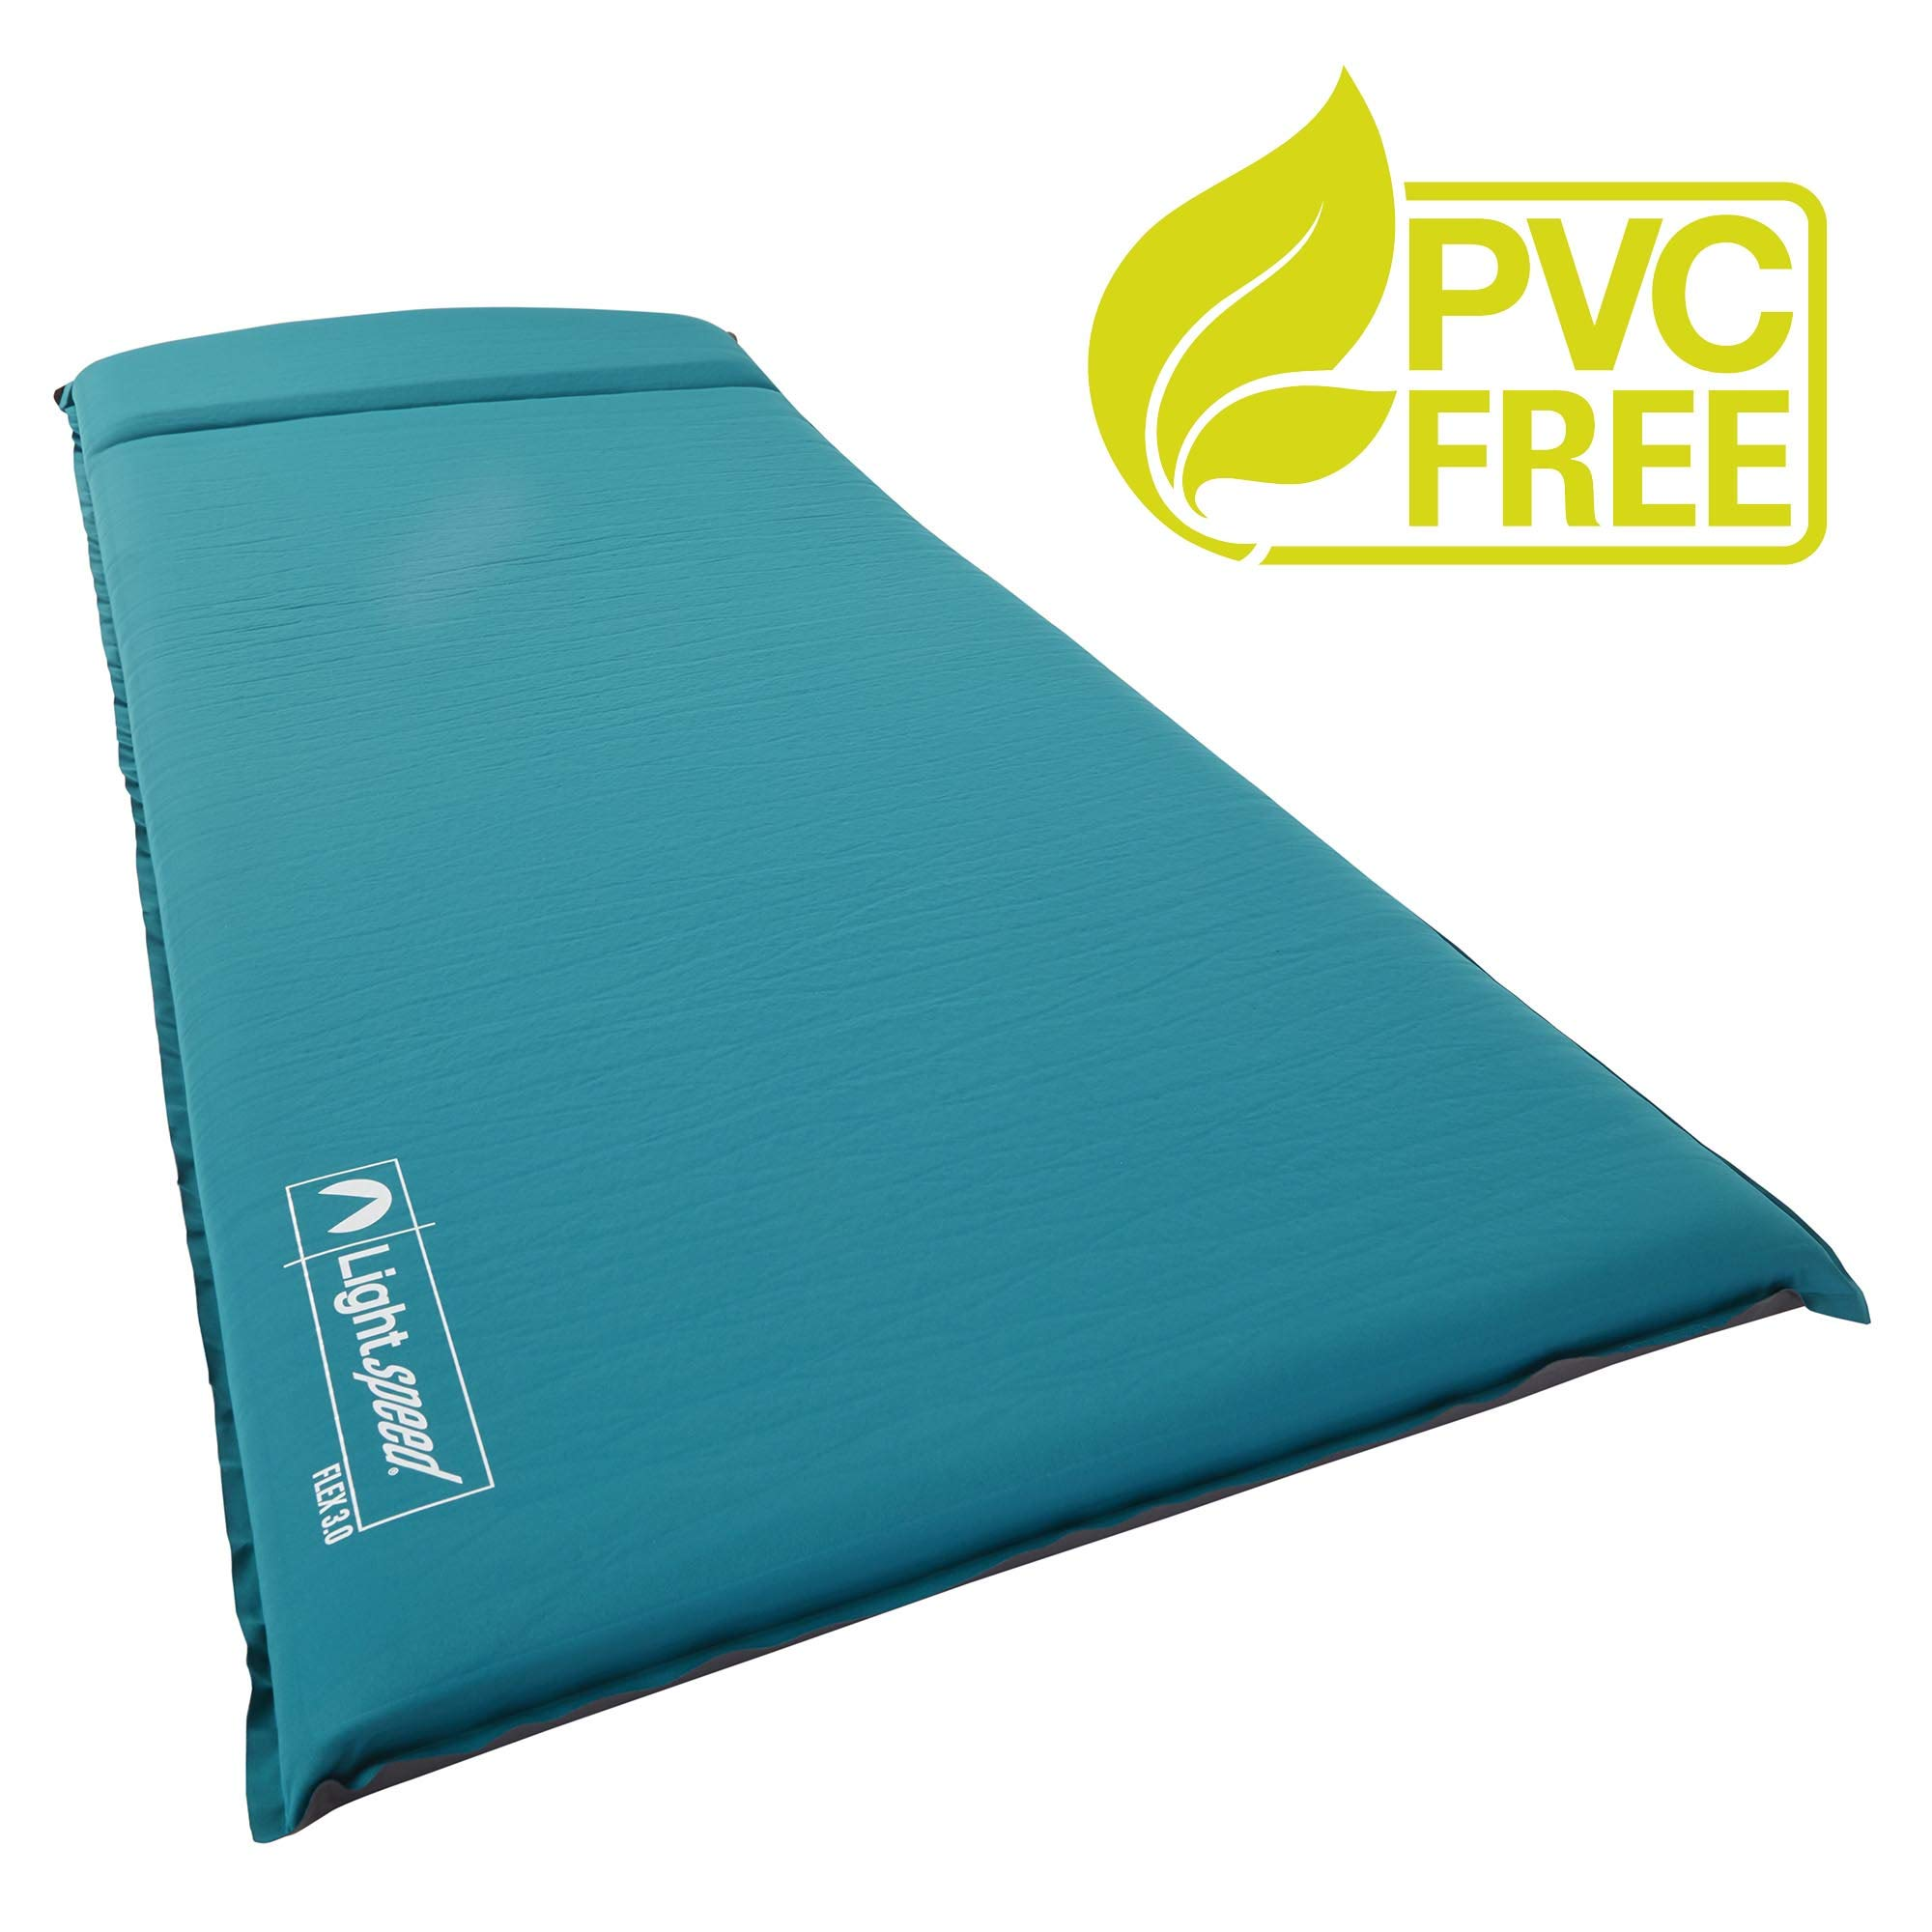 Lightspeed Outdoors XL Super Plush FlexForm Self-Inflating Sleep and Camp Pad, Teal by Lightspeed Outdoors